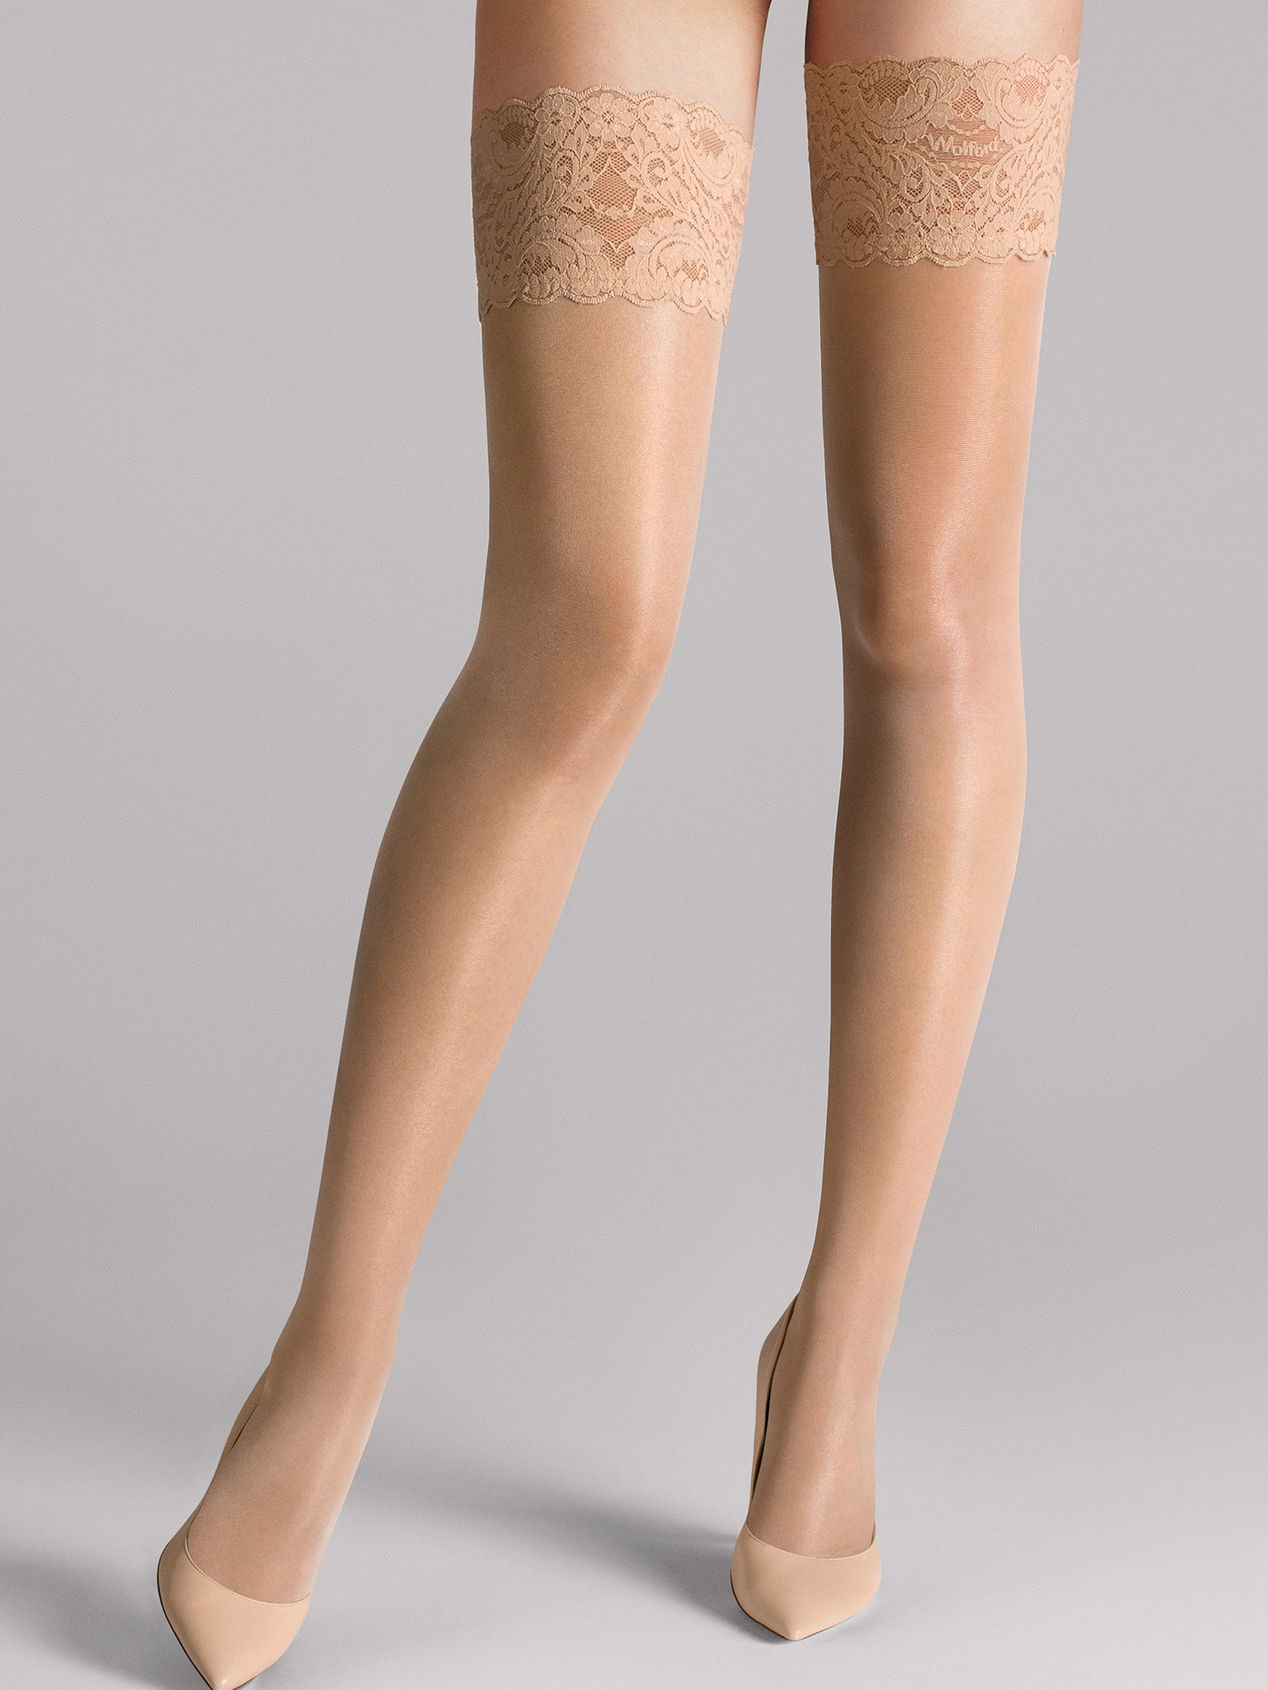 Wolford Satin Touch 20 Stay-Up, fairly light, large